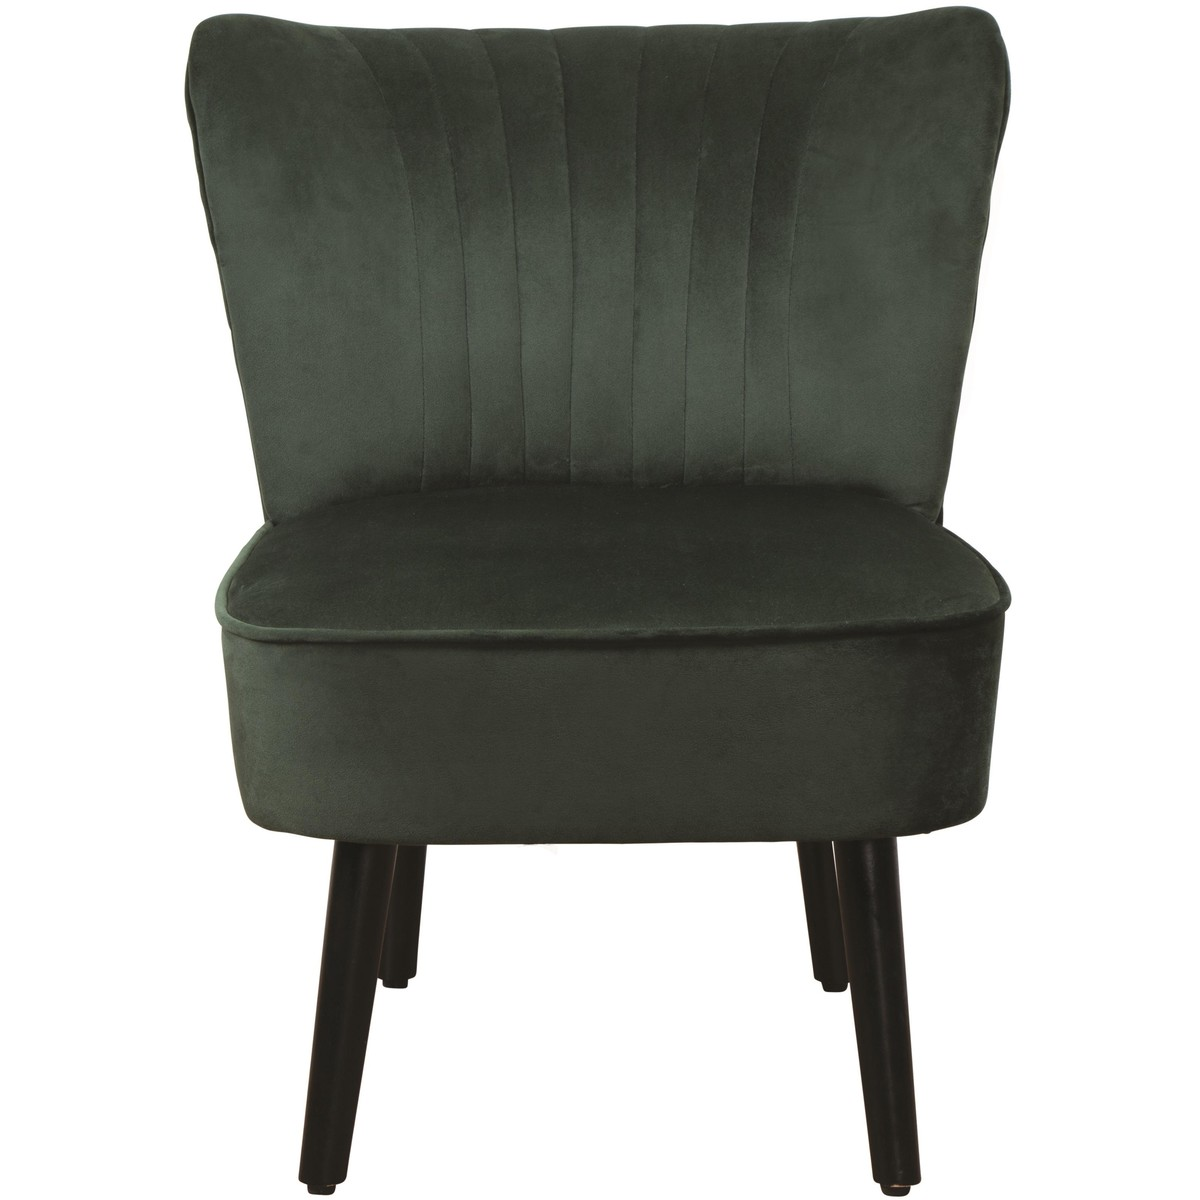 Velvet Slipper Chair Kodu Velvet Slipper Chair Emerald